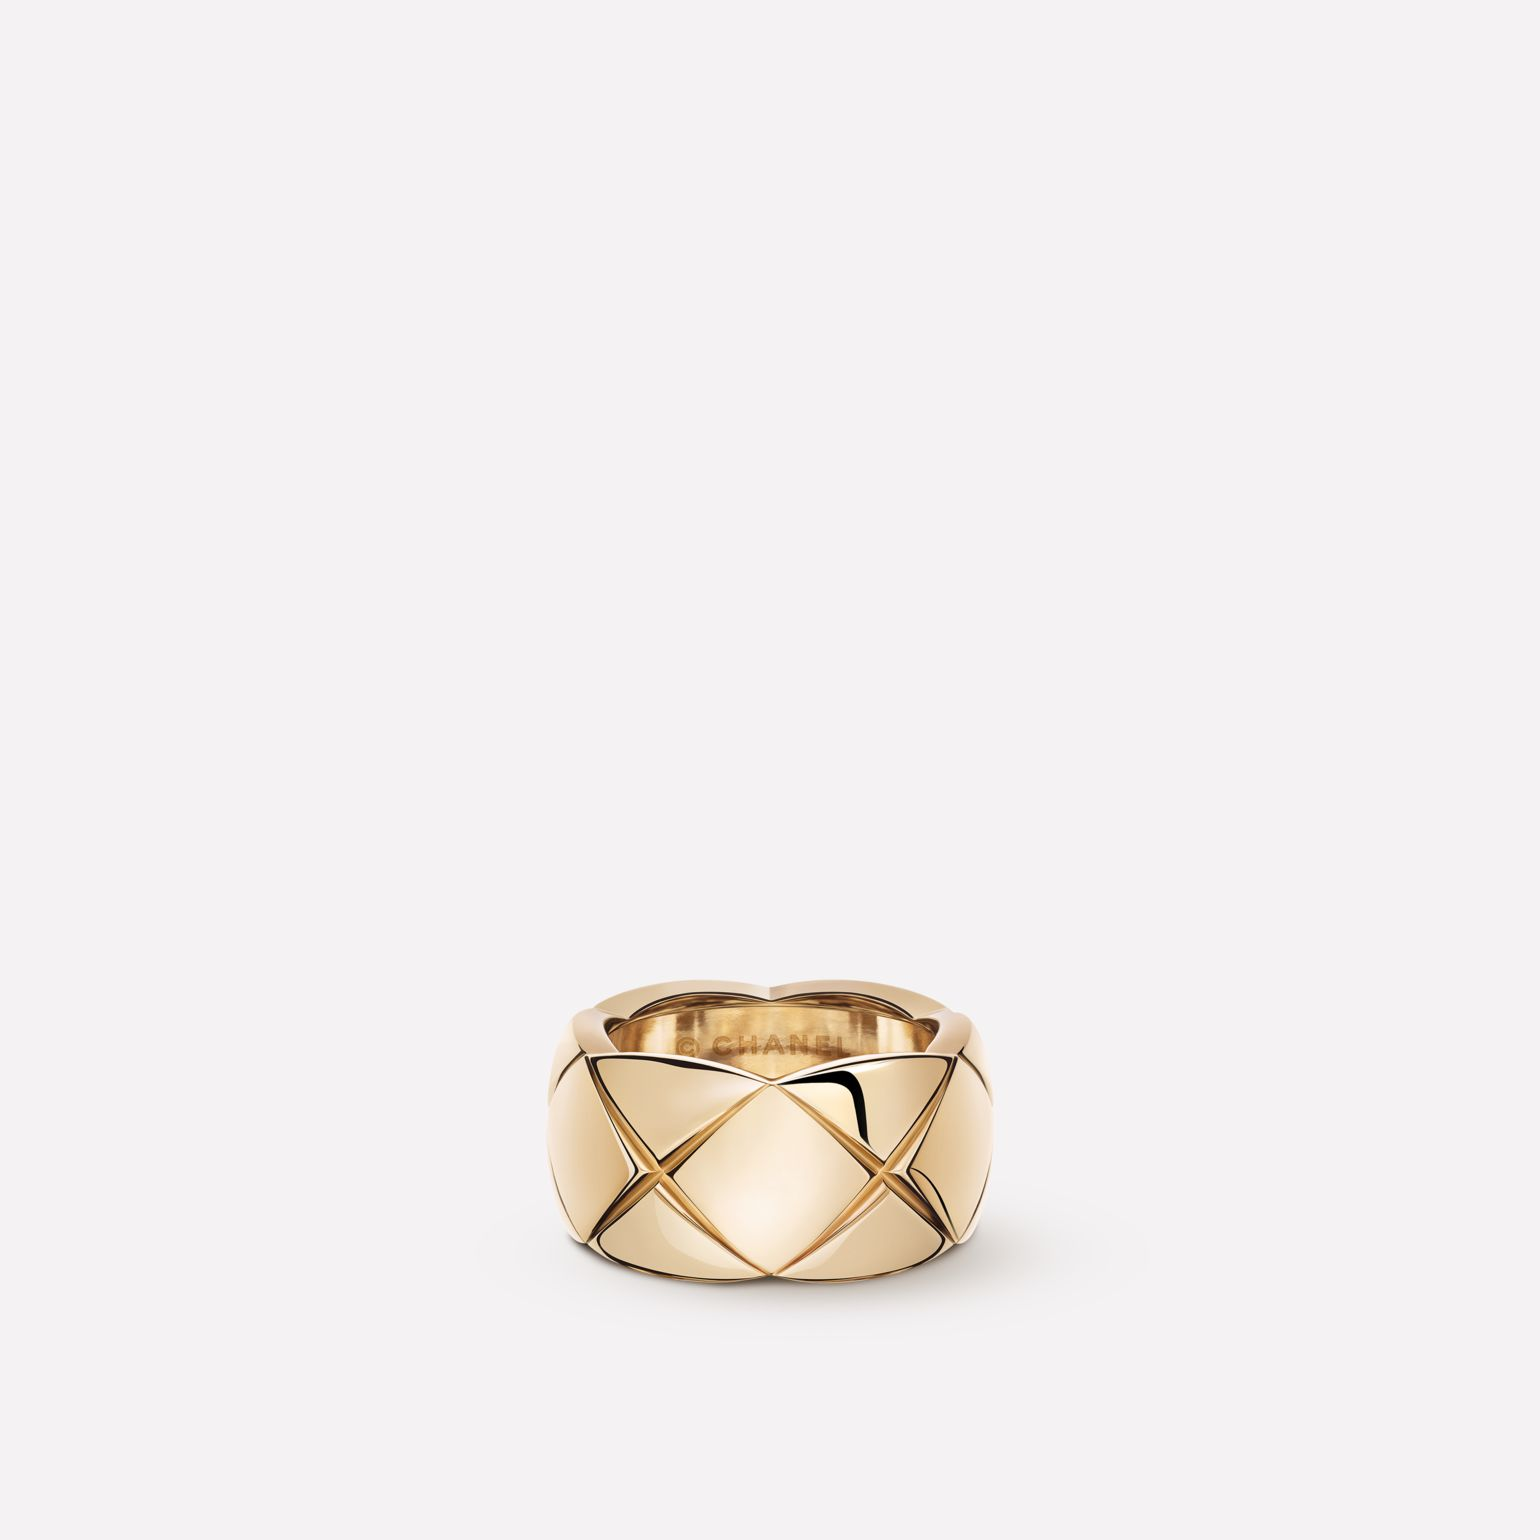 Chanel bague coco crush prix